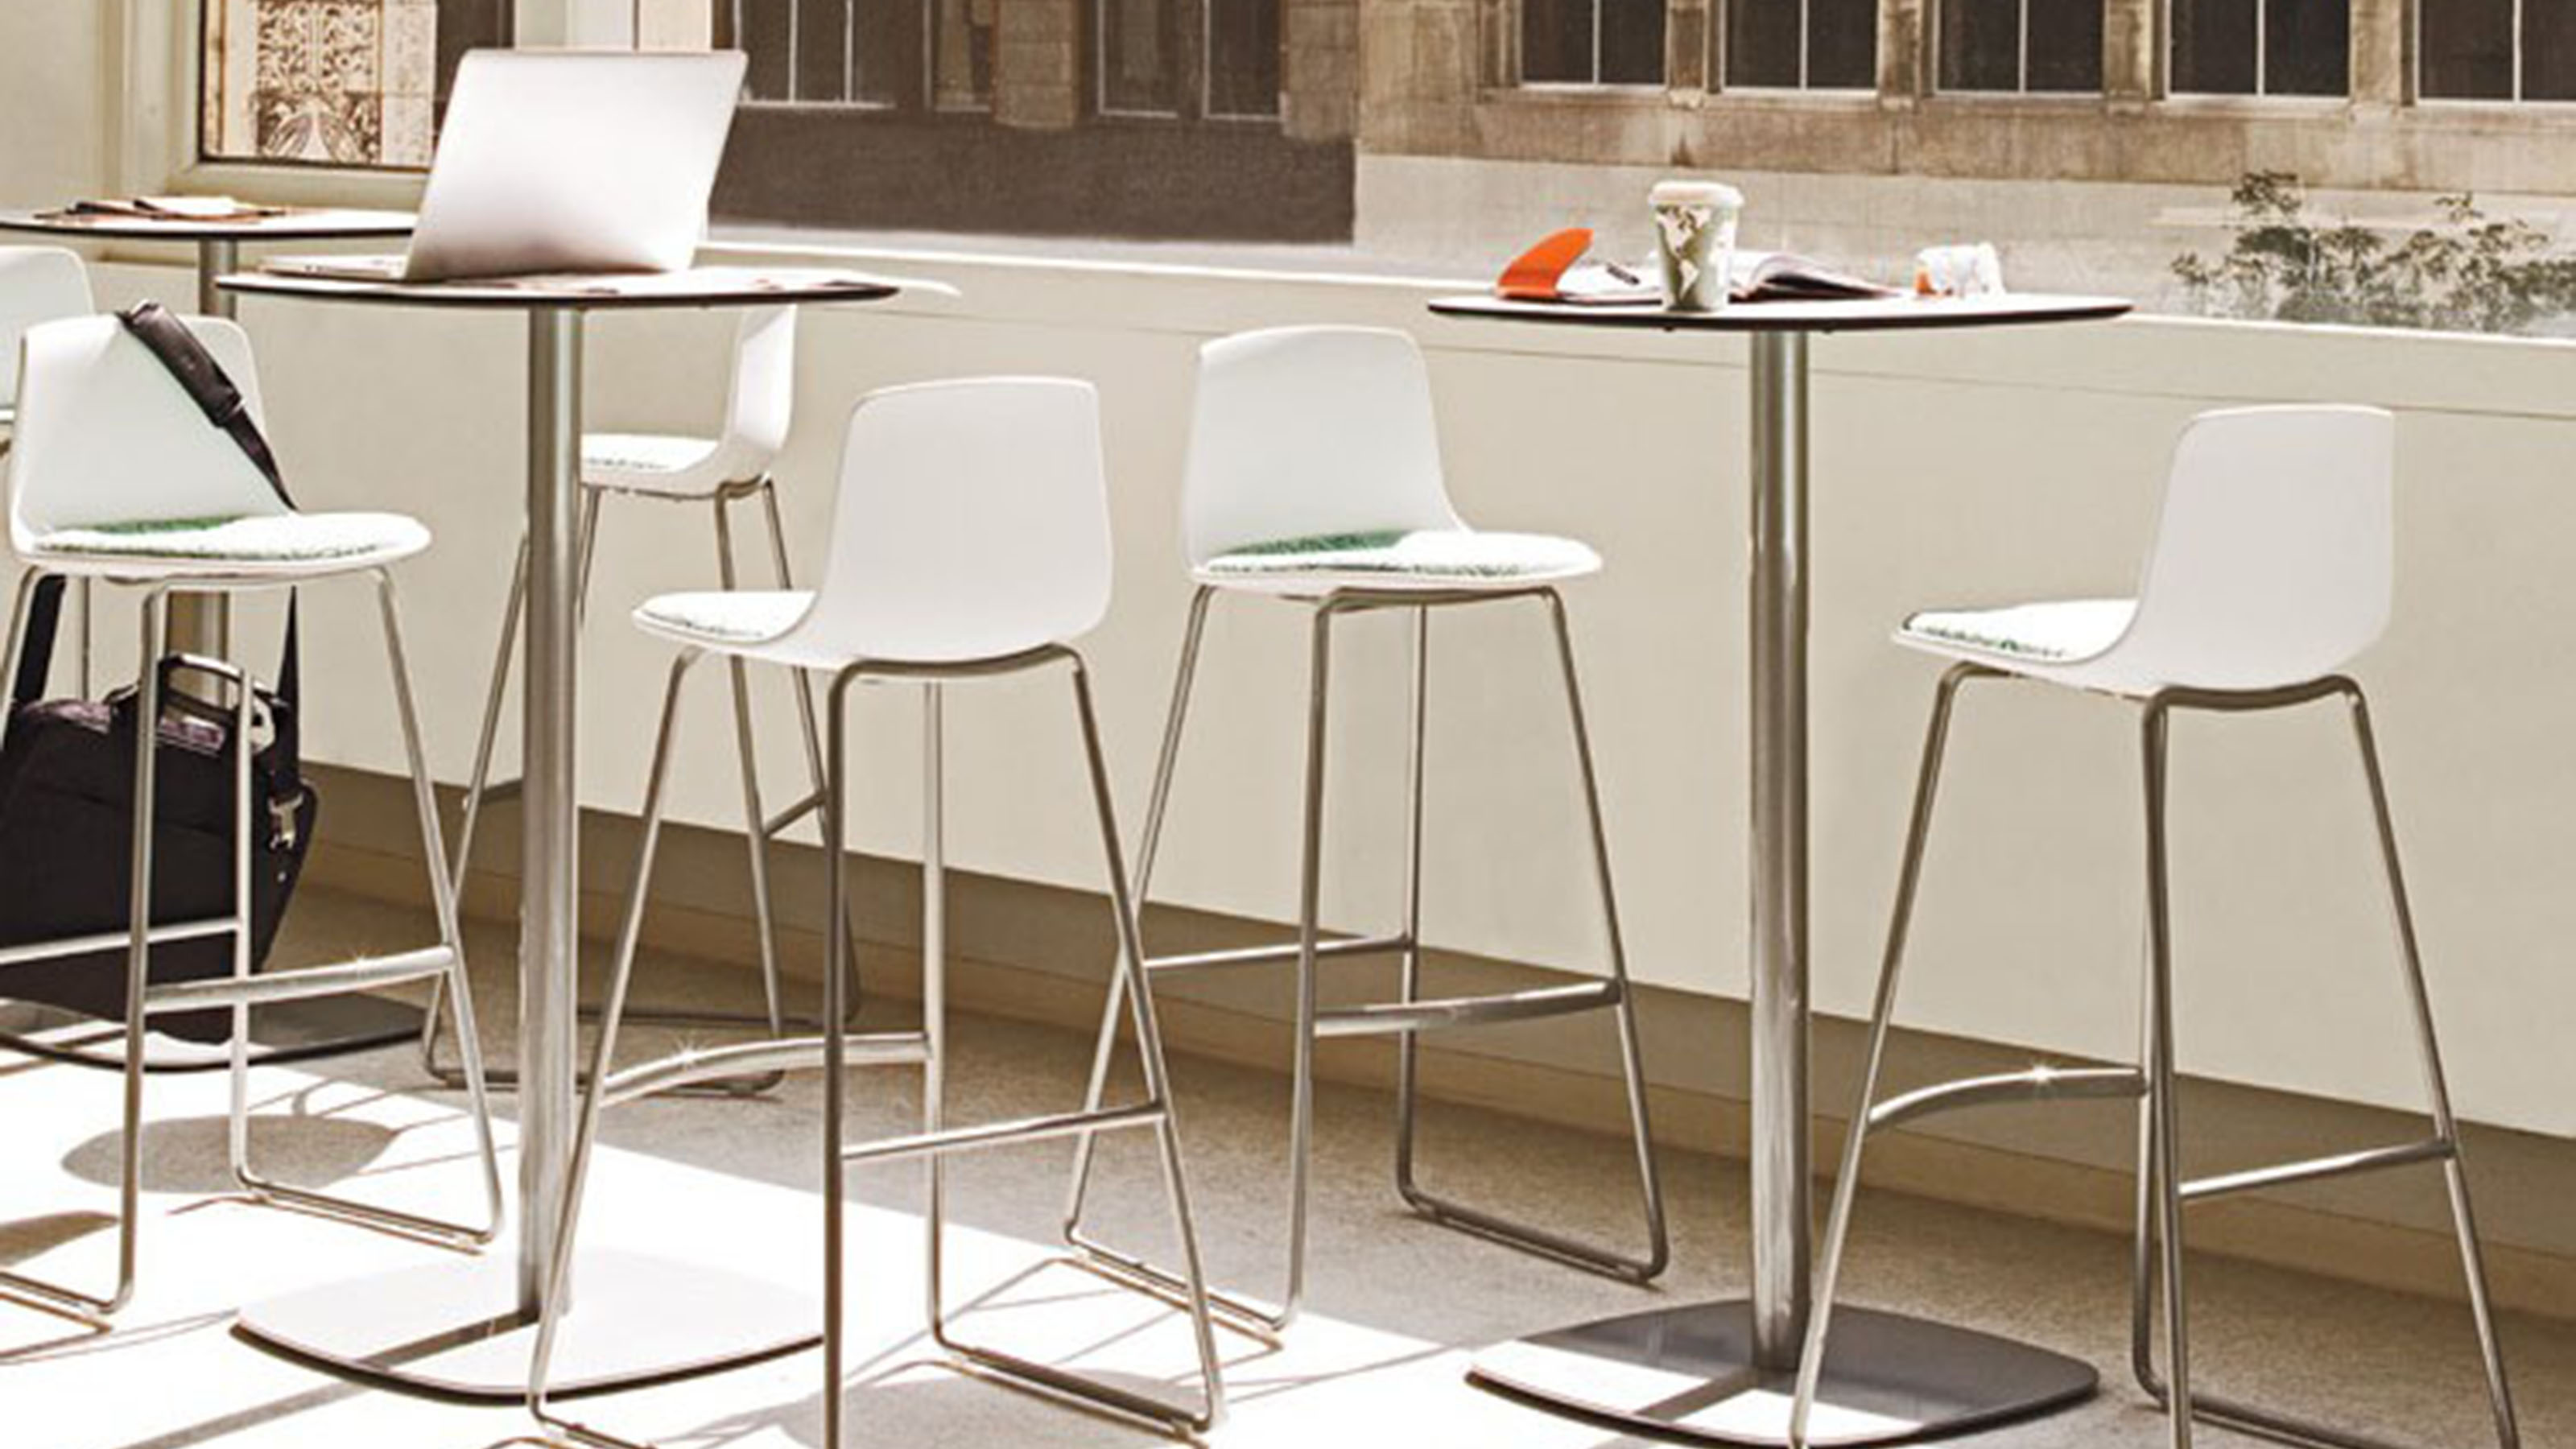 steelcase table images